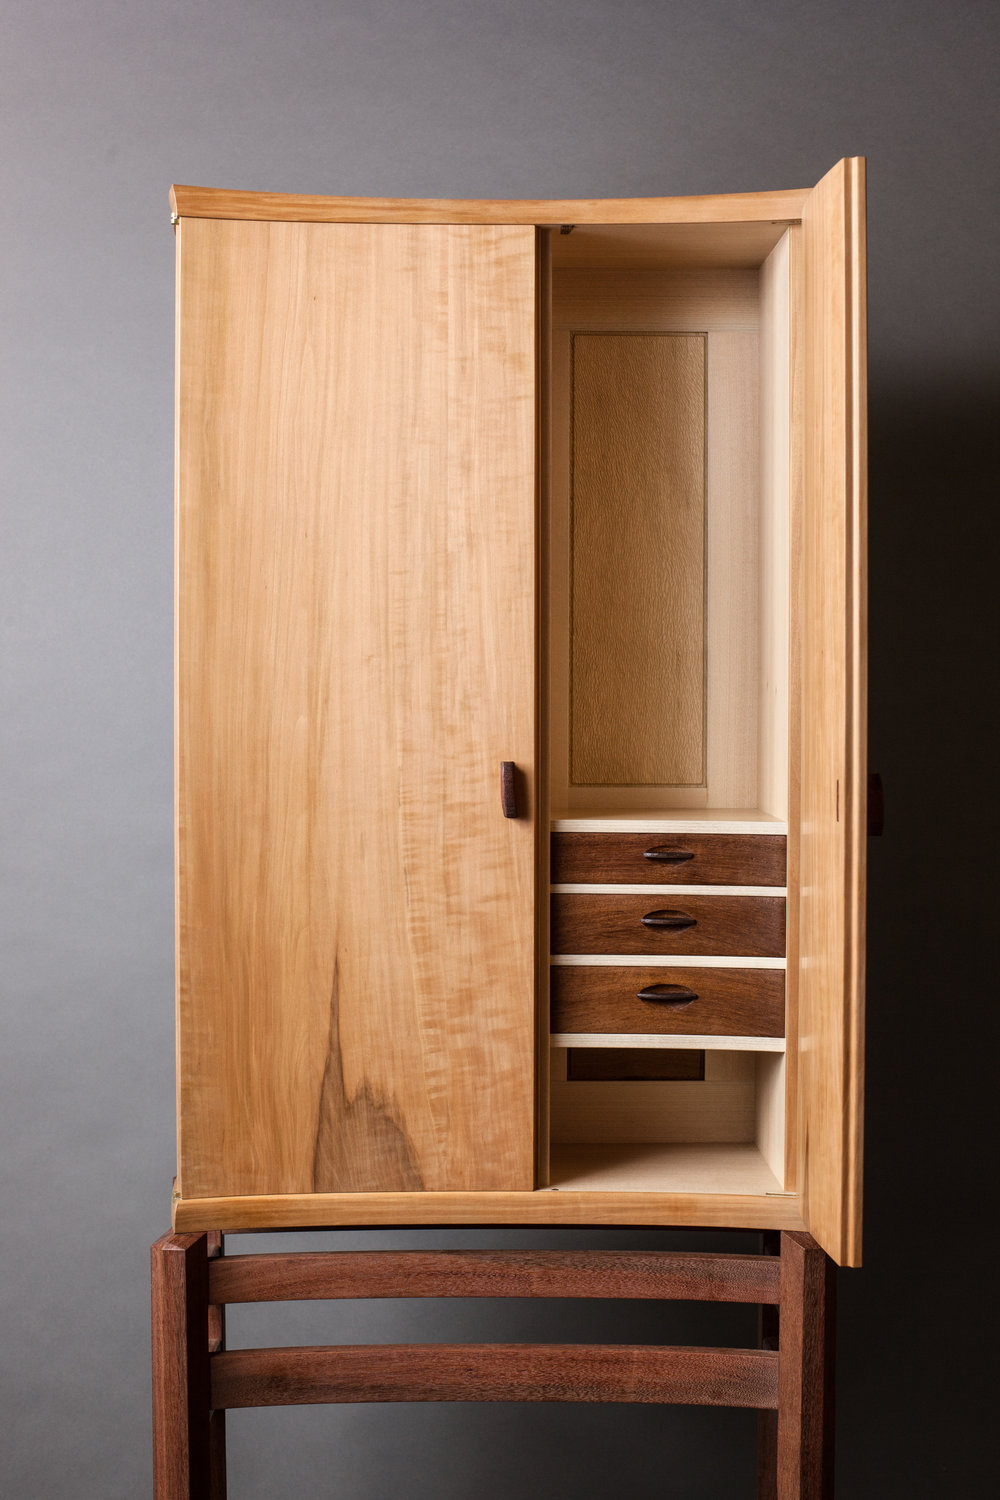 Interior of Composing Cabinet by  Refeal Greenblatt   Photography by Tim Andries